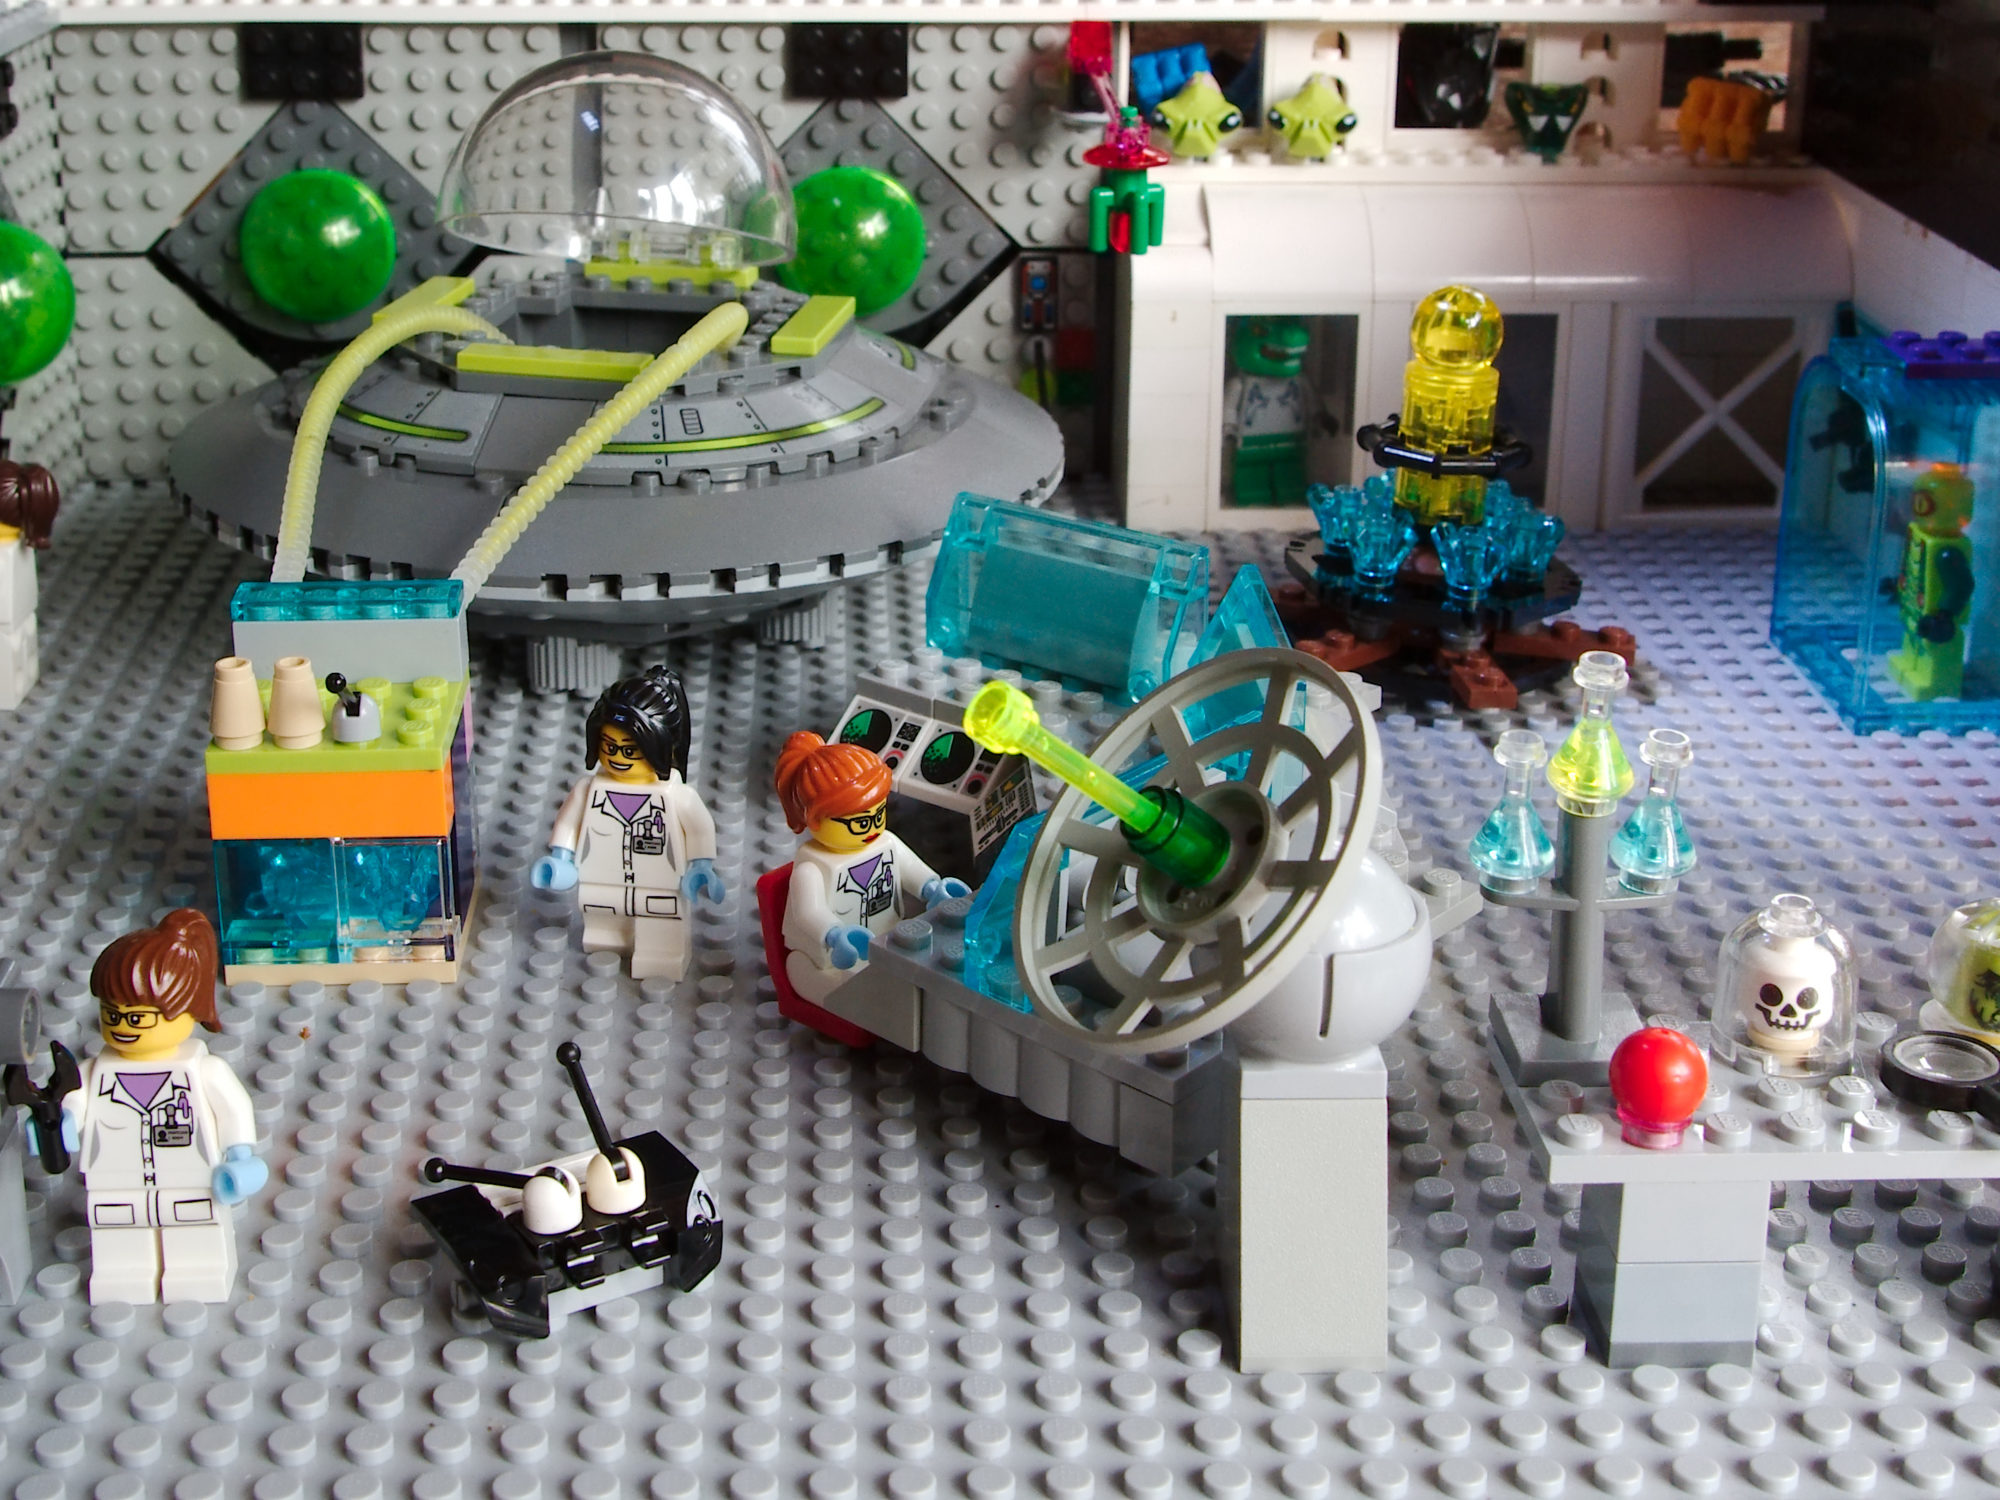 Lego pieces in laboratory